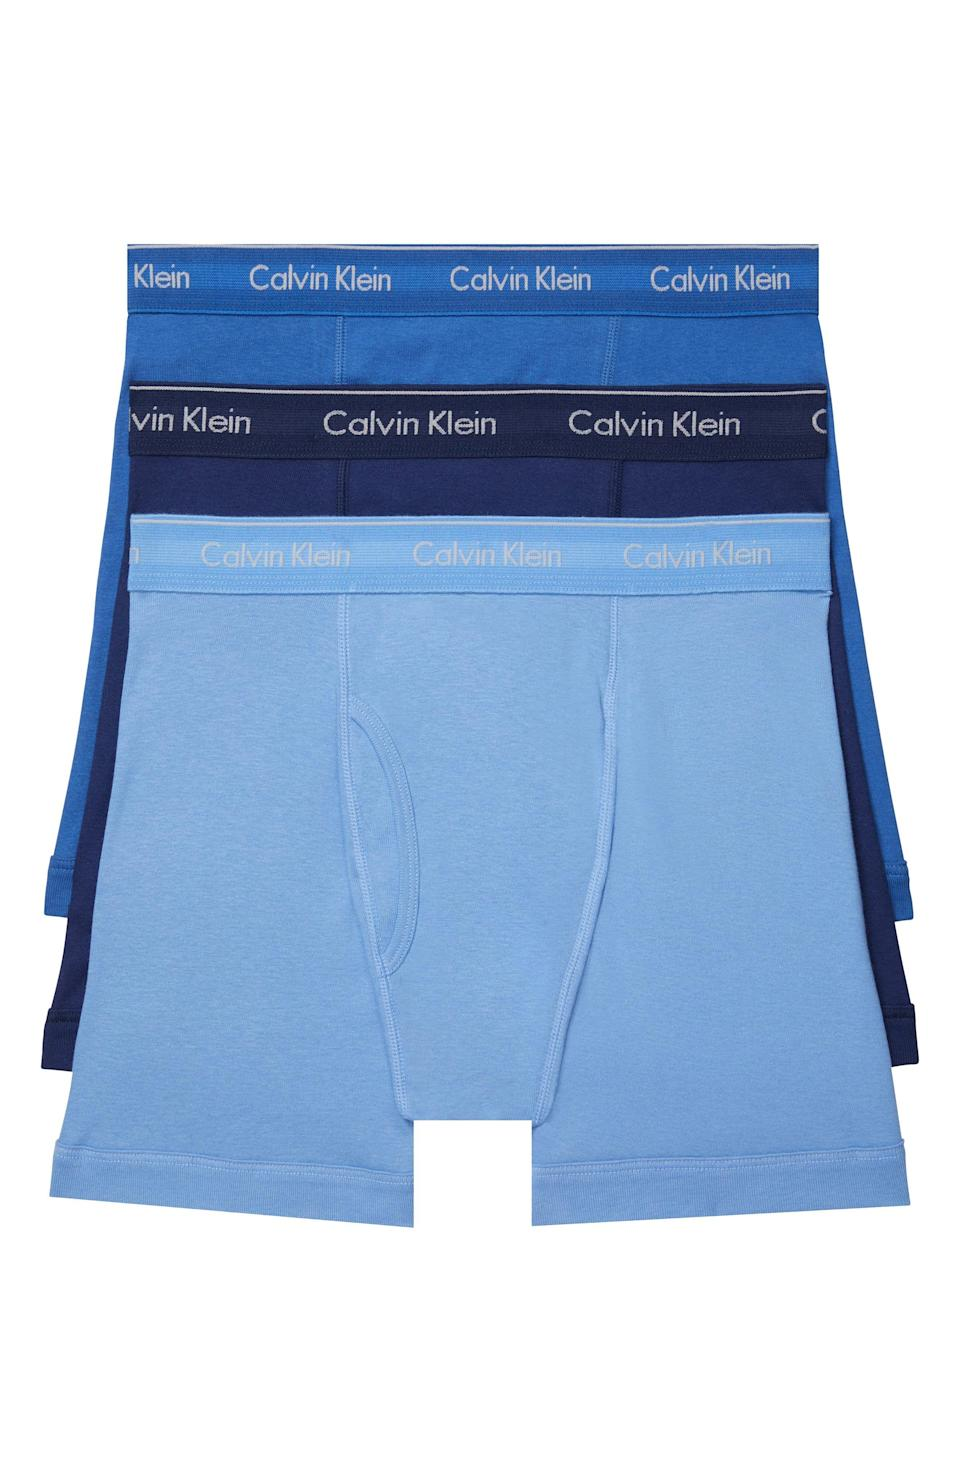 """<p><strong>Calvin Klein</strong></p><p>nordstrom.com</p><p><strong>$36.12</strong></p><p><a href=""""https://go.redirectingat.com?id=74968X1596630&url=https%3A%2F%2Fwww.nordstrom.com%2Fs%2Fcalvin-klein-3-pack-boxer-briefs%2F5925184&sref=https%3A%2F%2Fwww.esquire.com%2Fstyle%2Fg36535194%2Fnordstrom-mens-sale-half-yearly-spring-2021%2F"""" rel=""""nofollow noopener"""" target=""""_blank"""" data-ylk=""""slk:Shop Now"""" class=""""link rapid-noclick-resp"""">Shop Now</a></p><p>Tired: Buying underwear not on sale. Wire: But buying underwear on sale! </p>"""